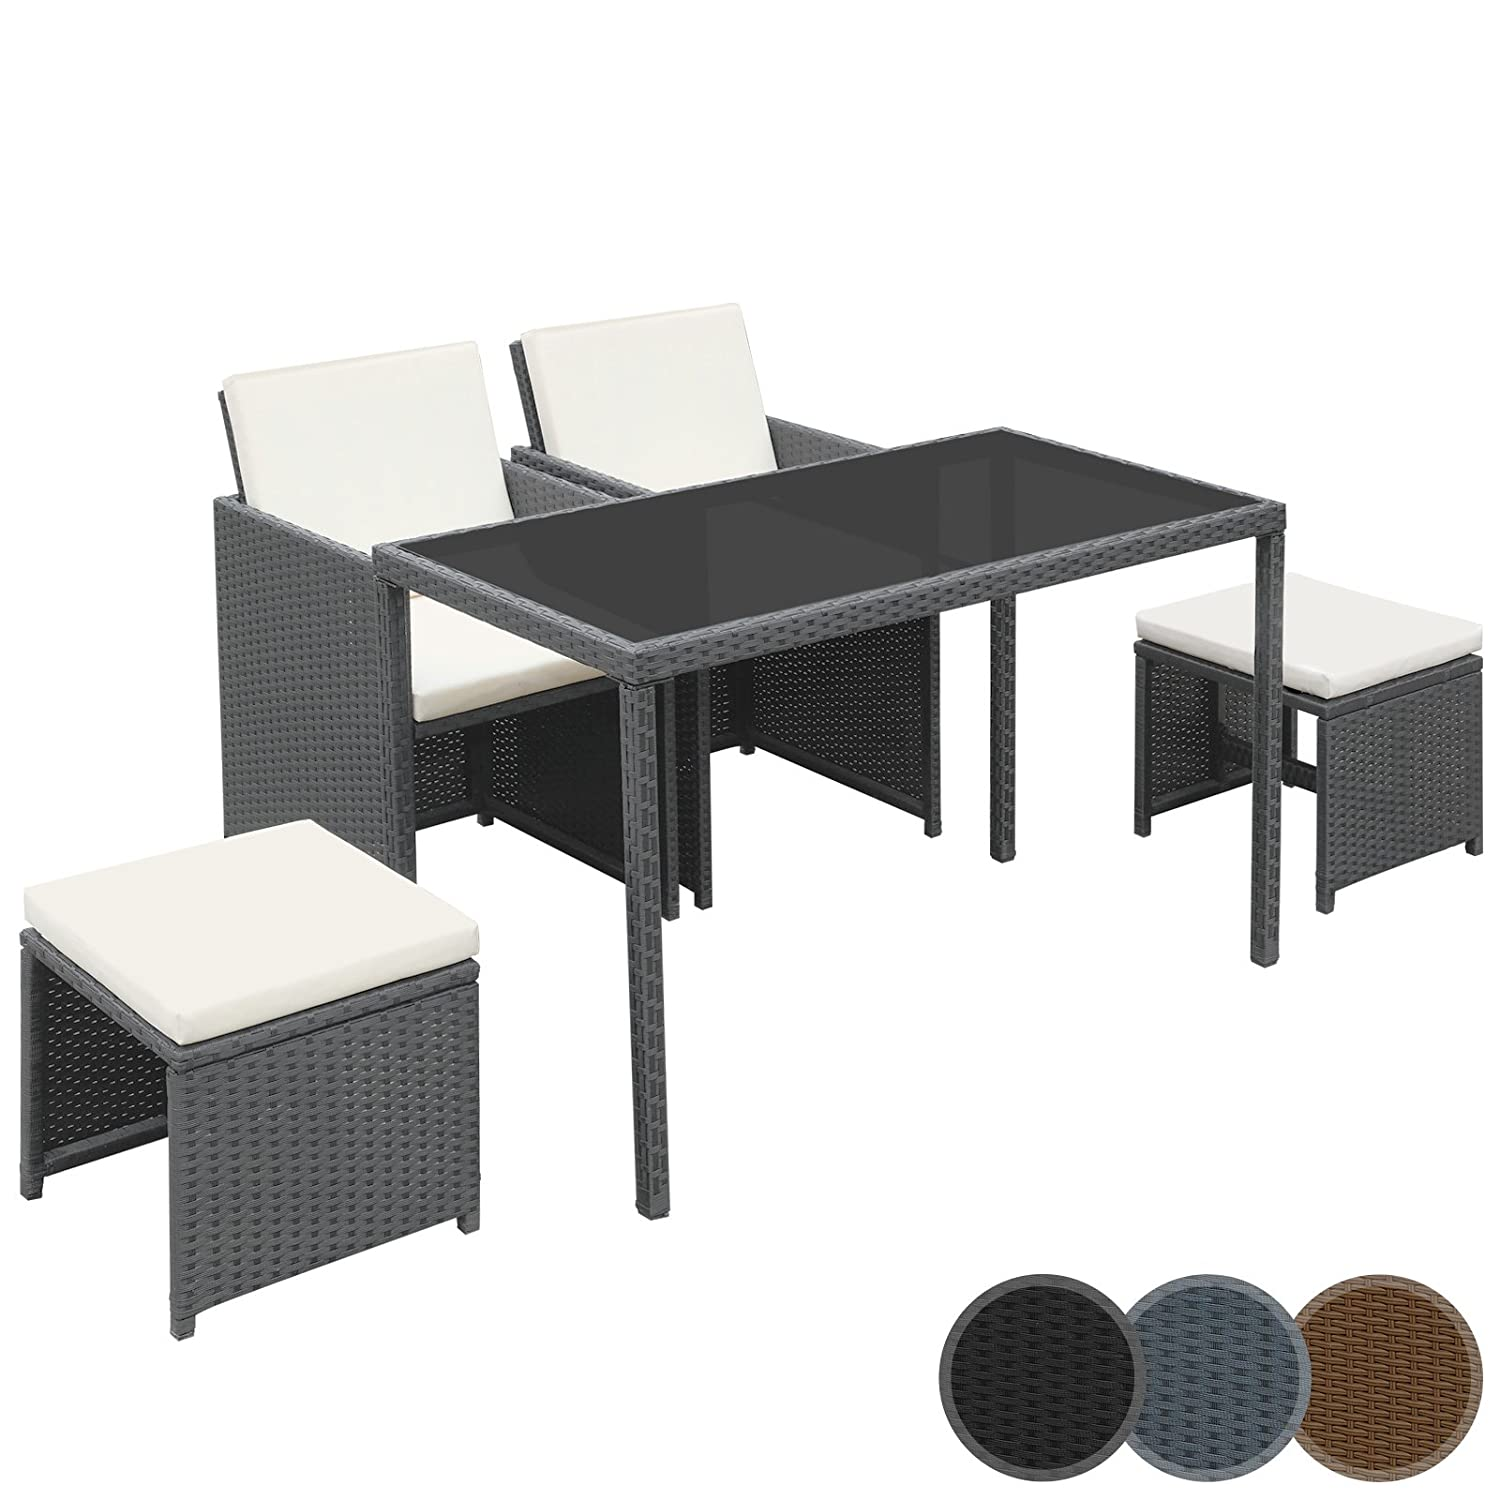 miadomodo polyrattan essgruppe sitzgruppe gartenm bel 5. Black Bedroom Furniture Sets. Home Design Ideas